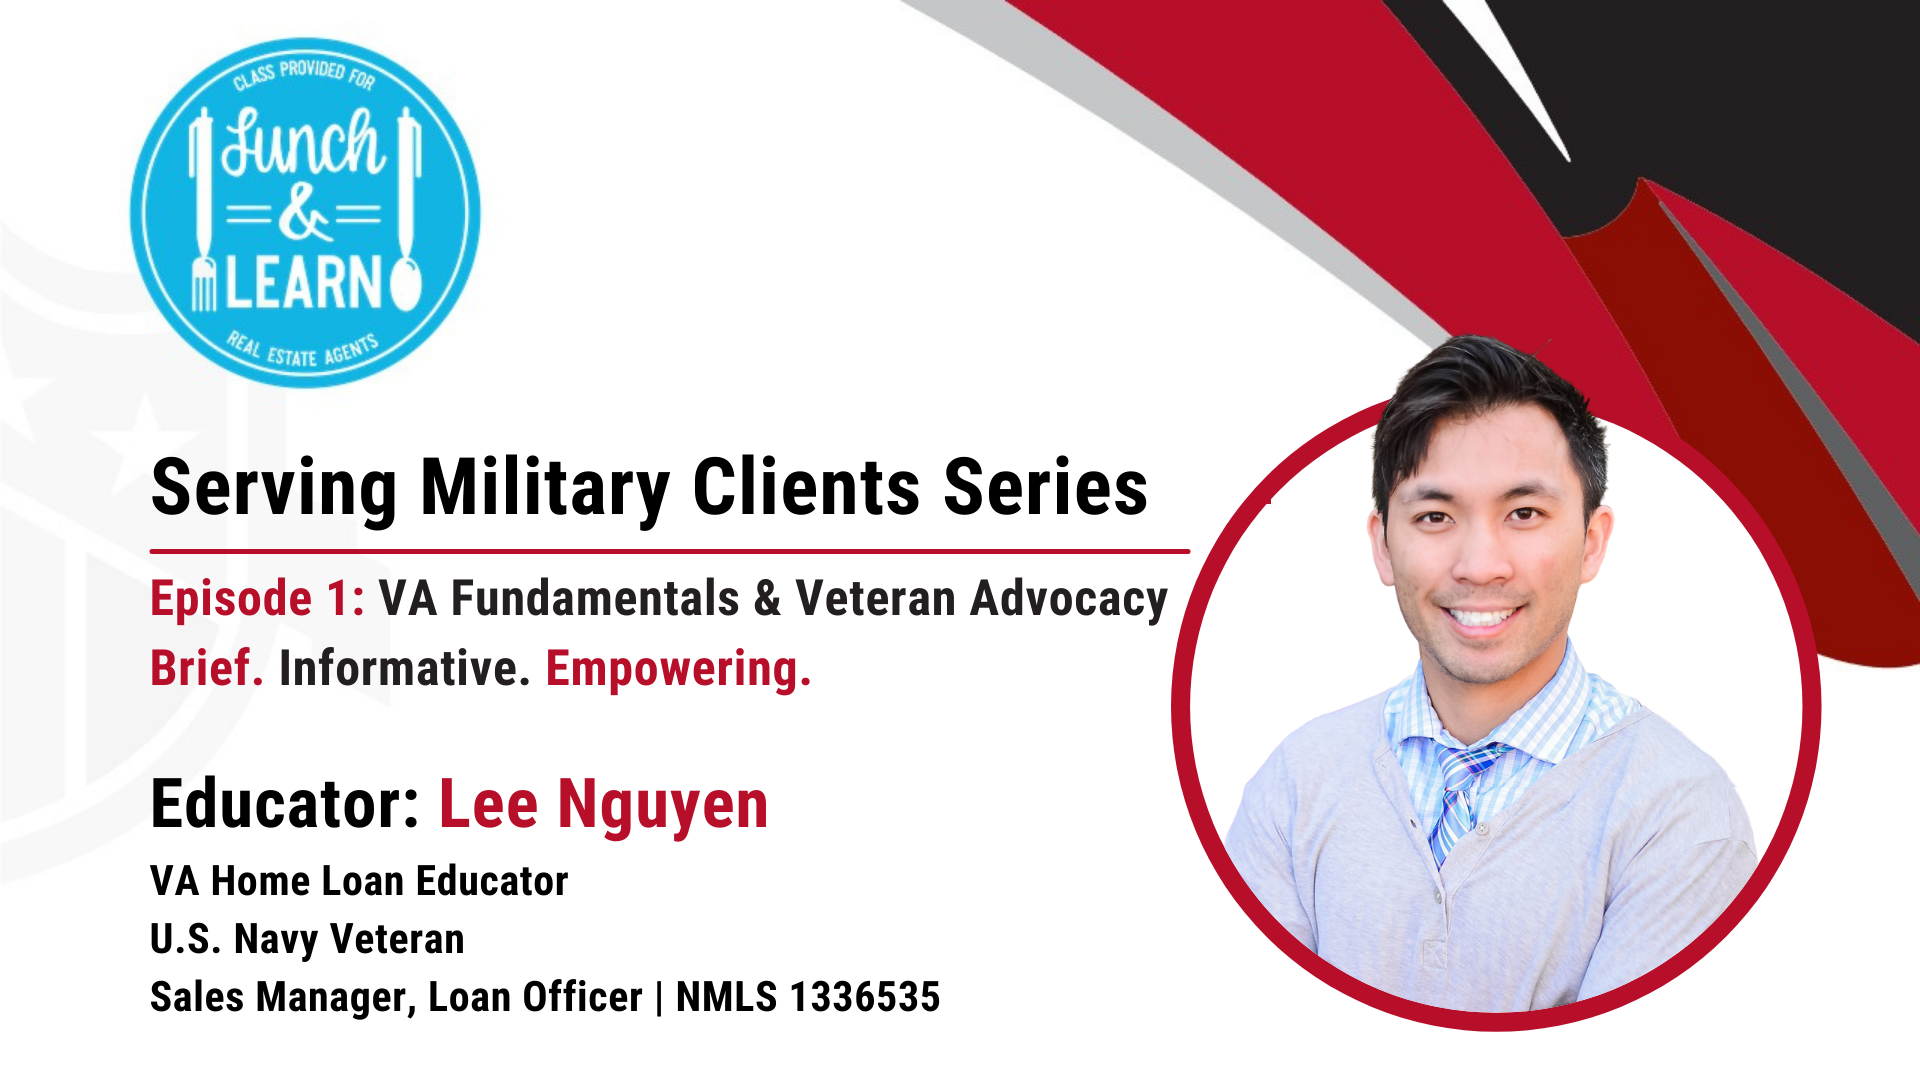 Episode 1: Serving Military Clients Series